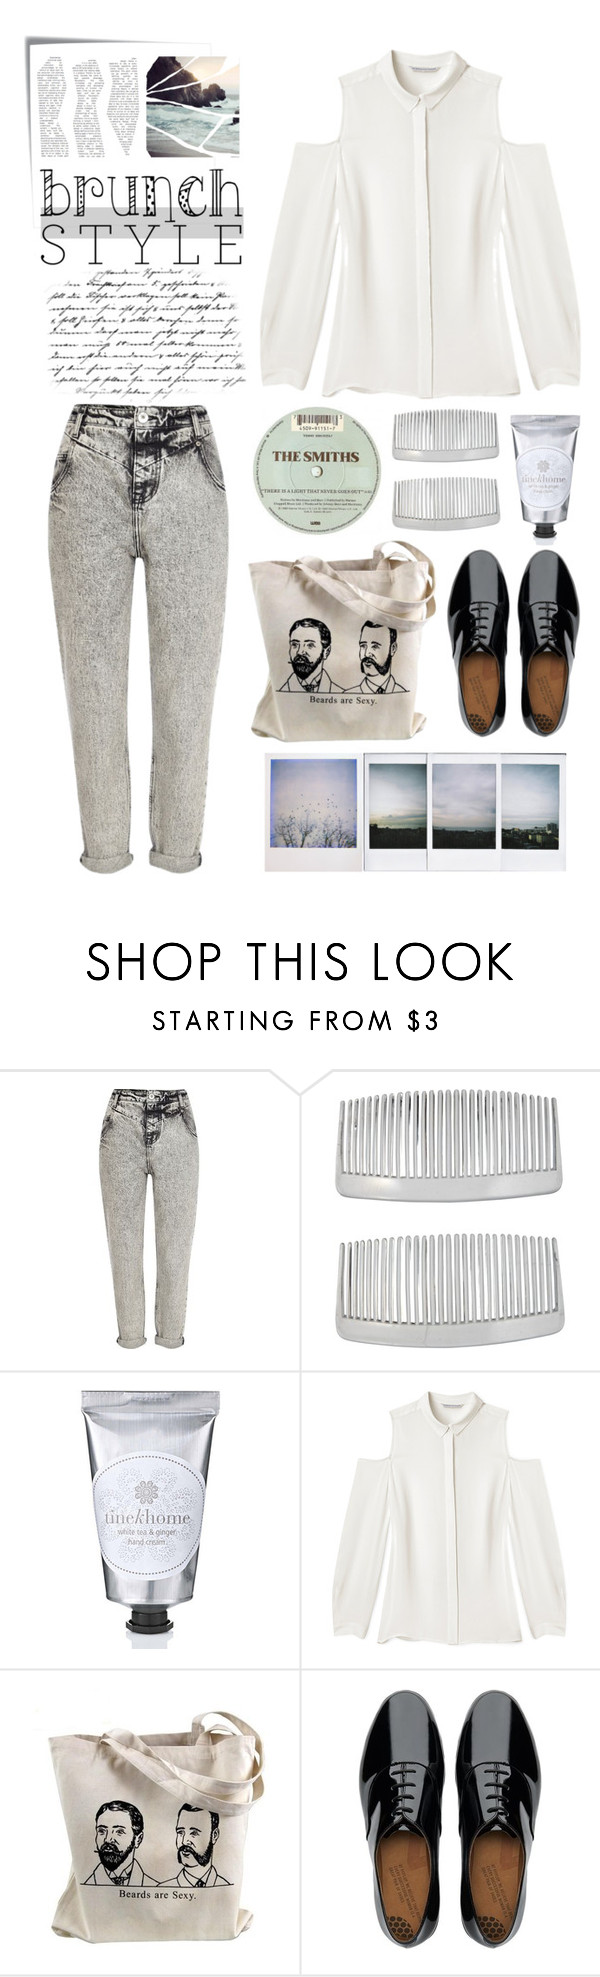 """#441"" by milicamonaj ❤ liked on Polyvore featuring Post-It, River Island, John Lewis, Rebecca Minkoff, FitFlop and Polaroid"